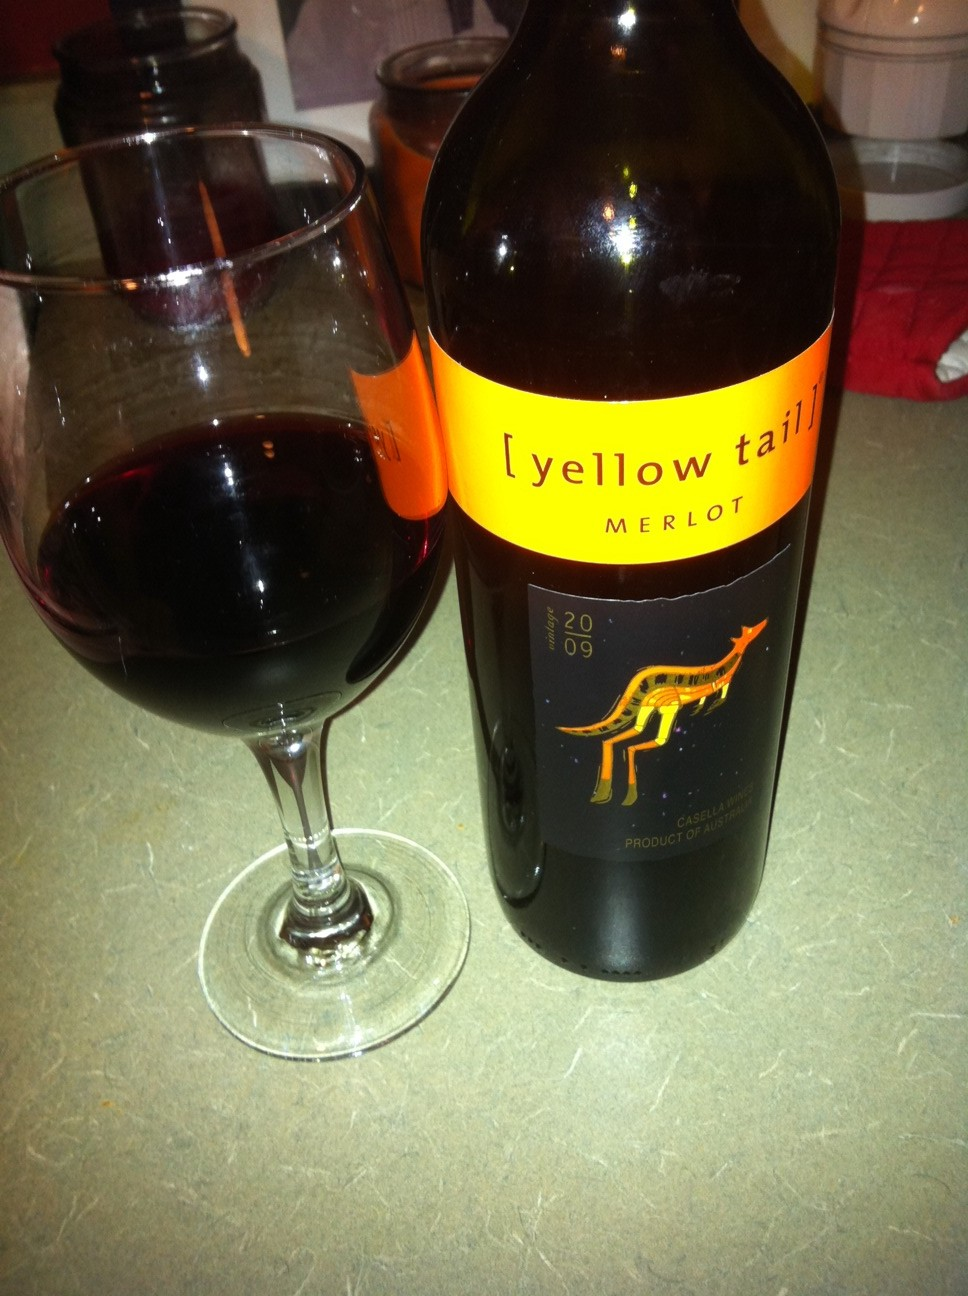 VV | [yellow tail] Merlot | Eat.Drink.Repeat.